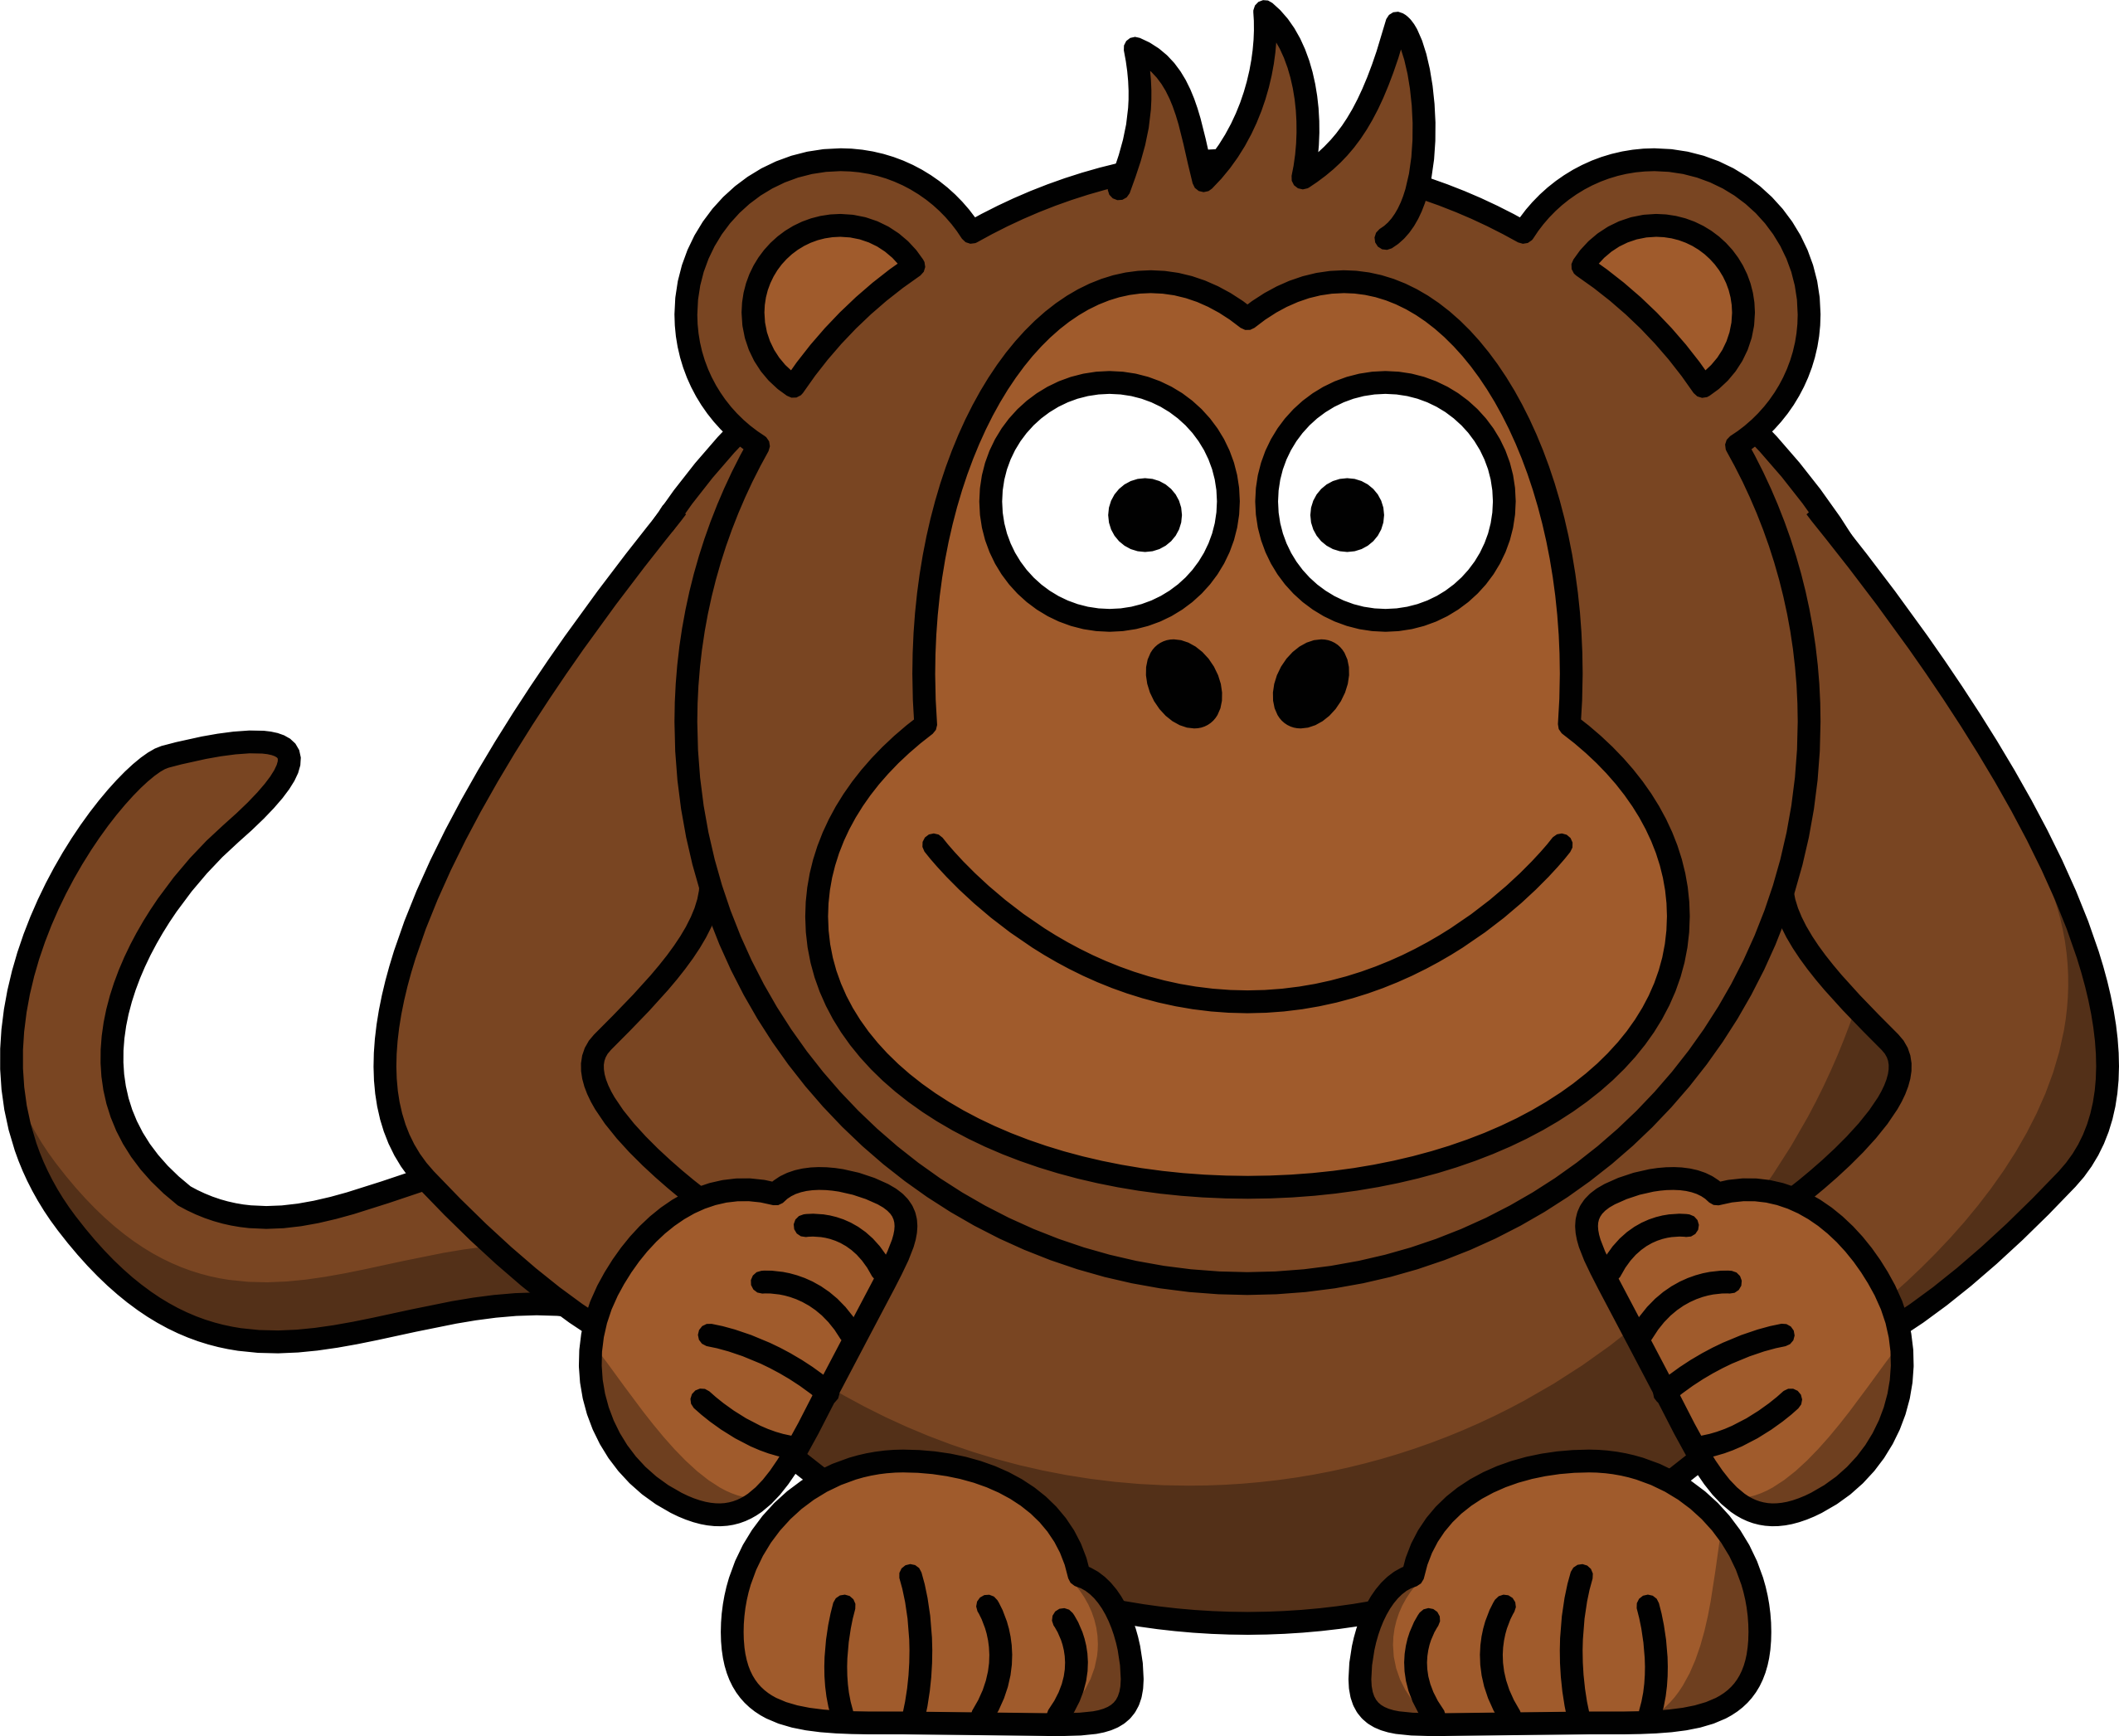 royalty free Monkey face at getdrawings. Ape clipart macaque.